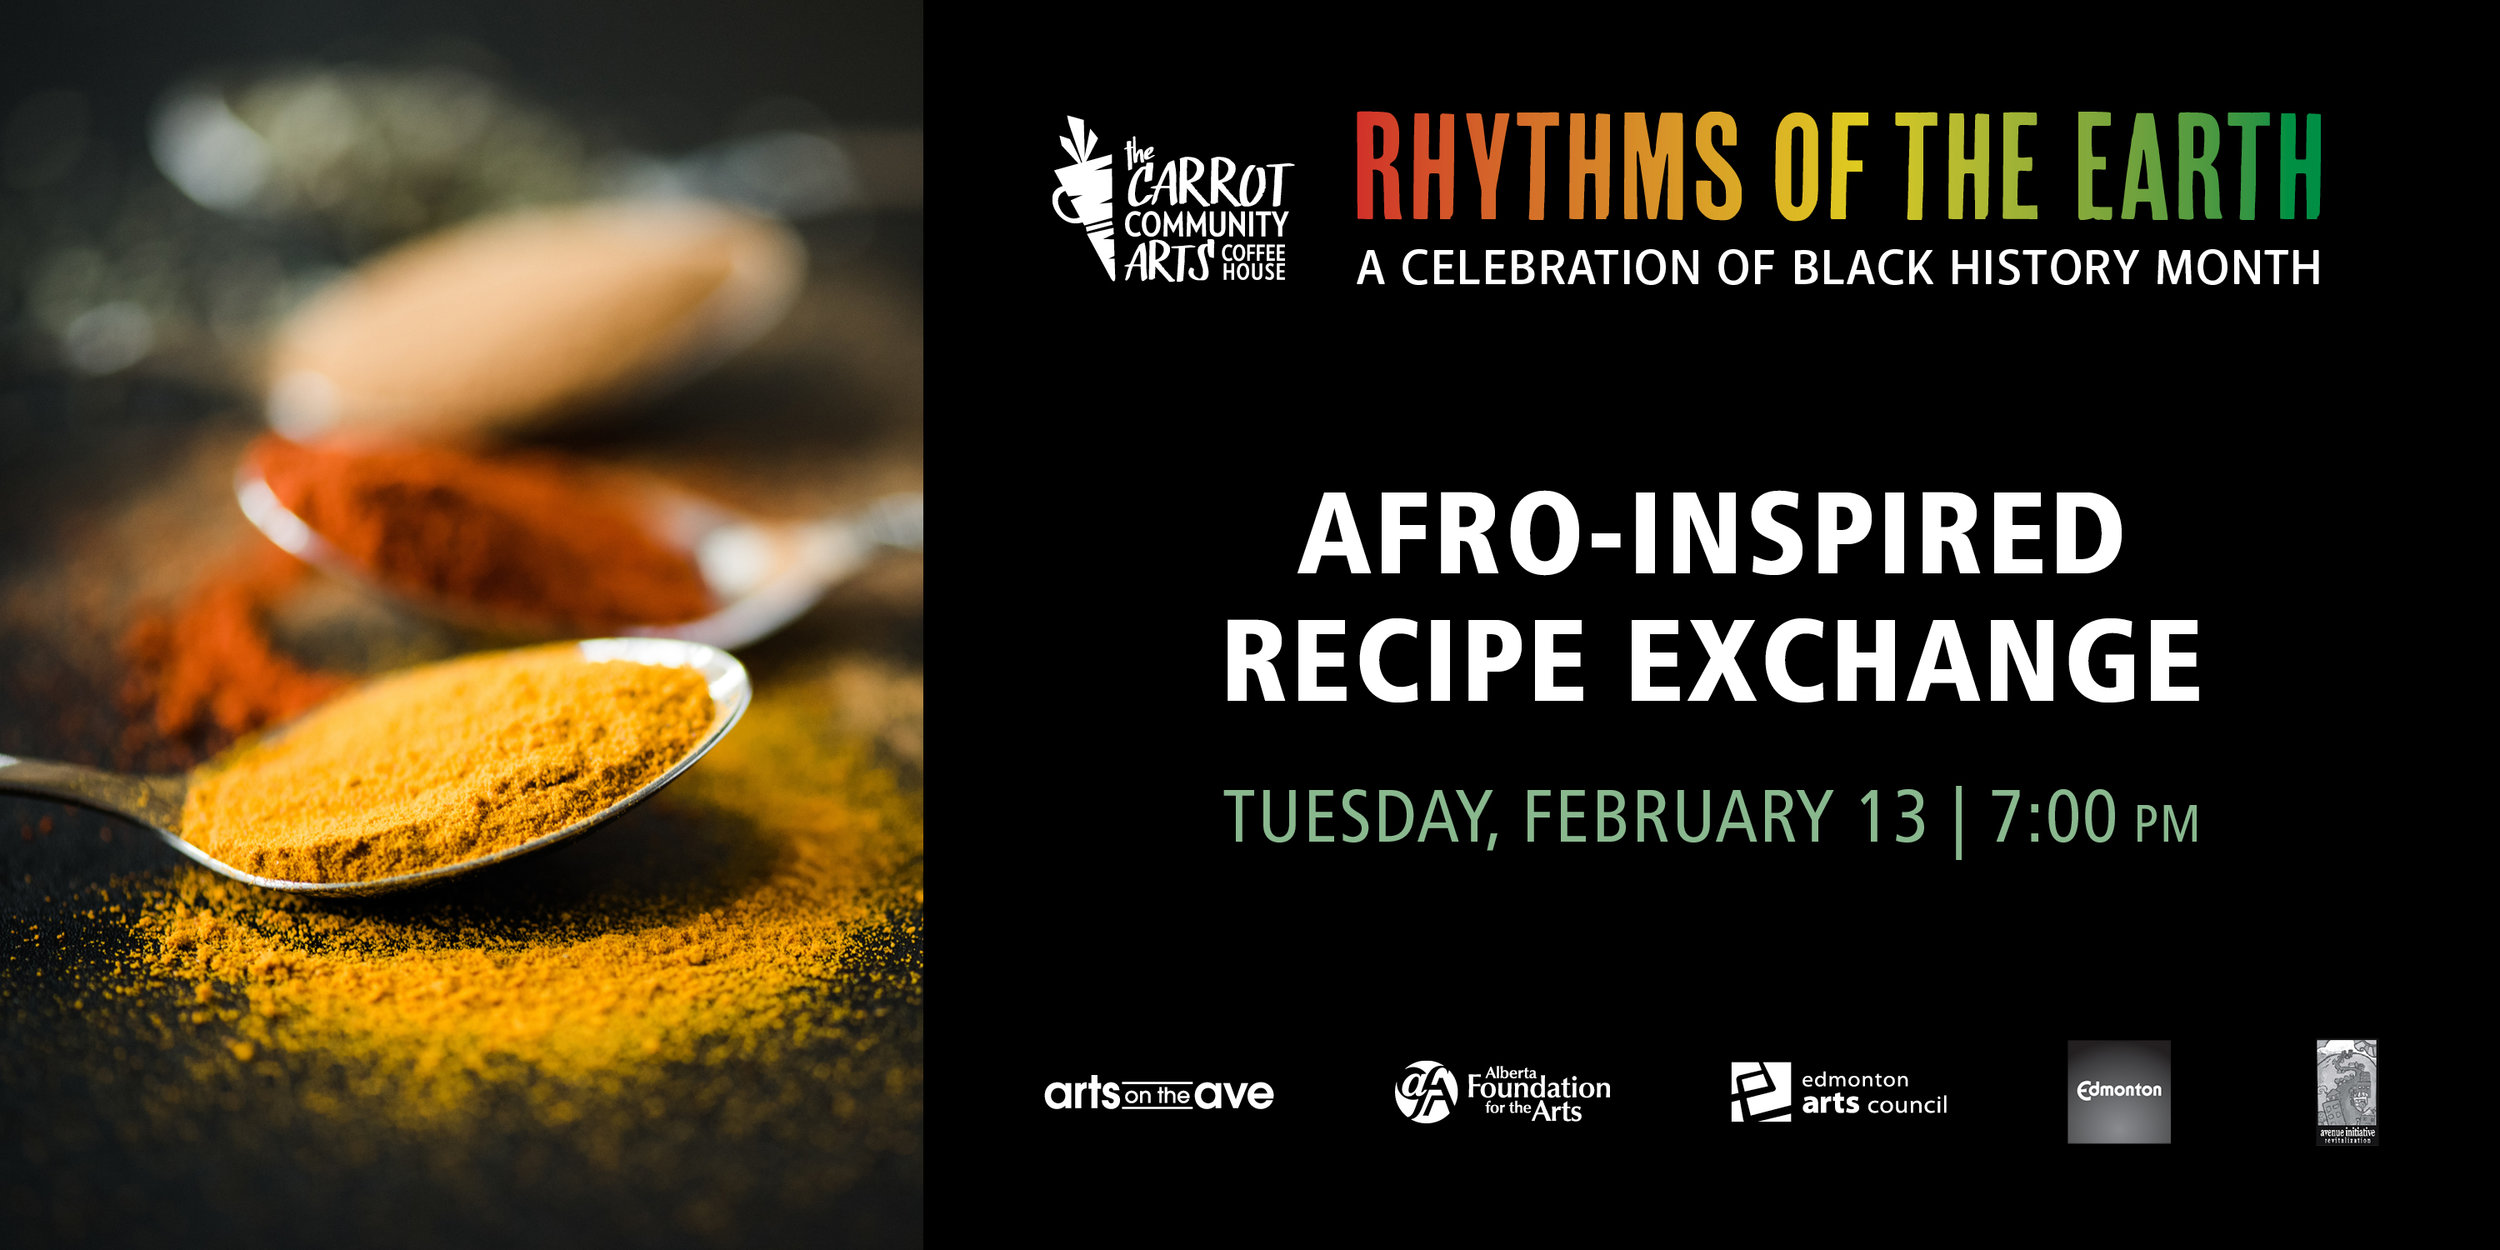 BHM-EventBrite-Recipe.jpg